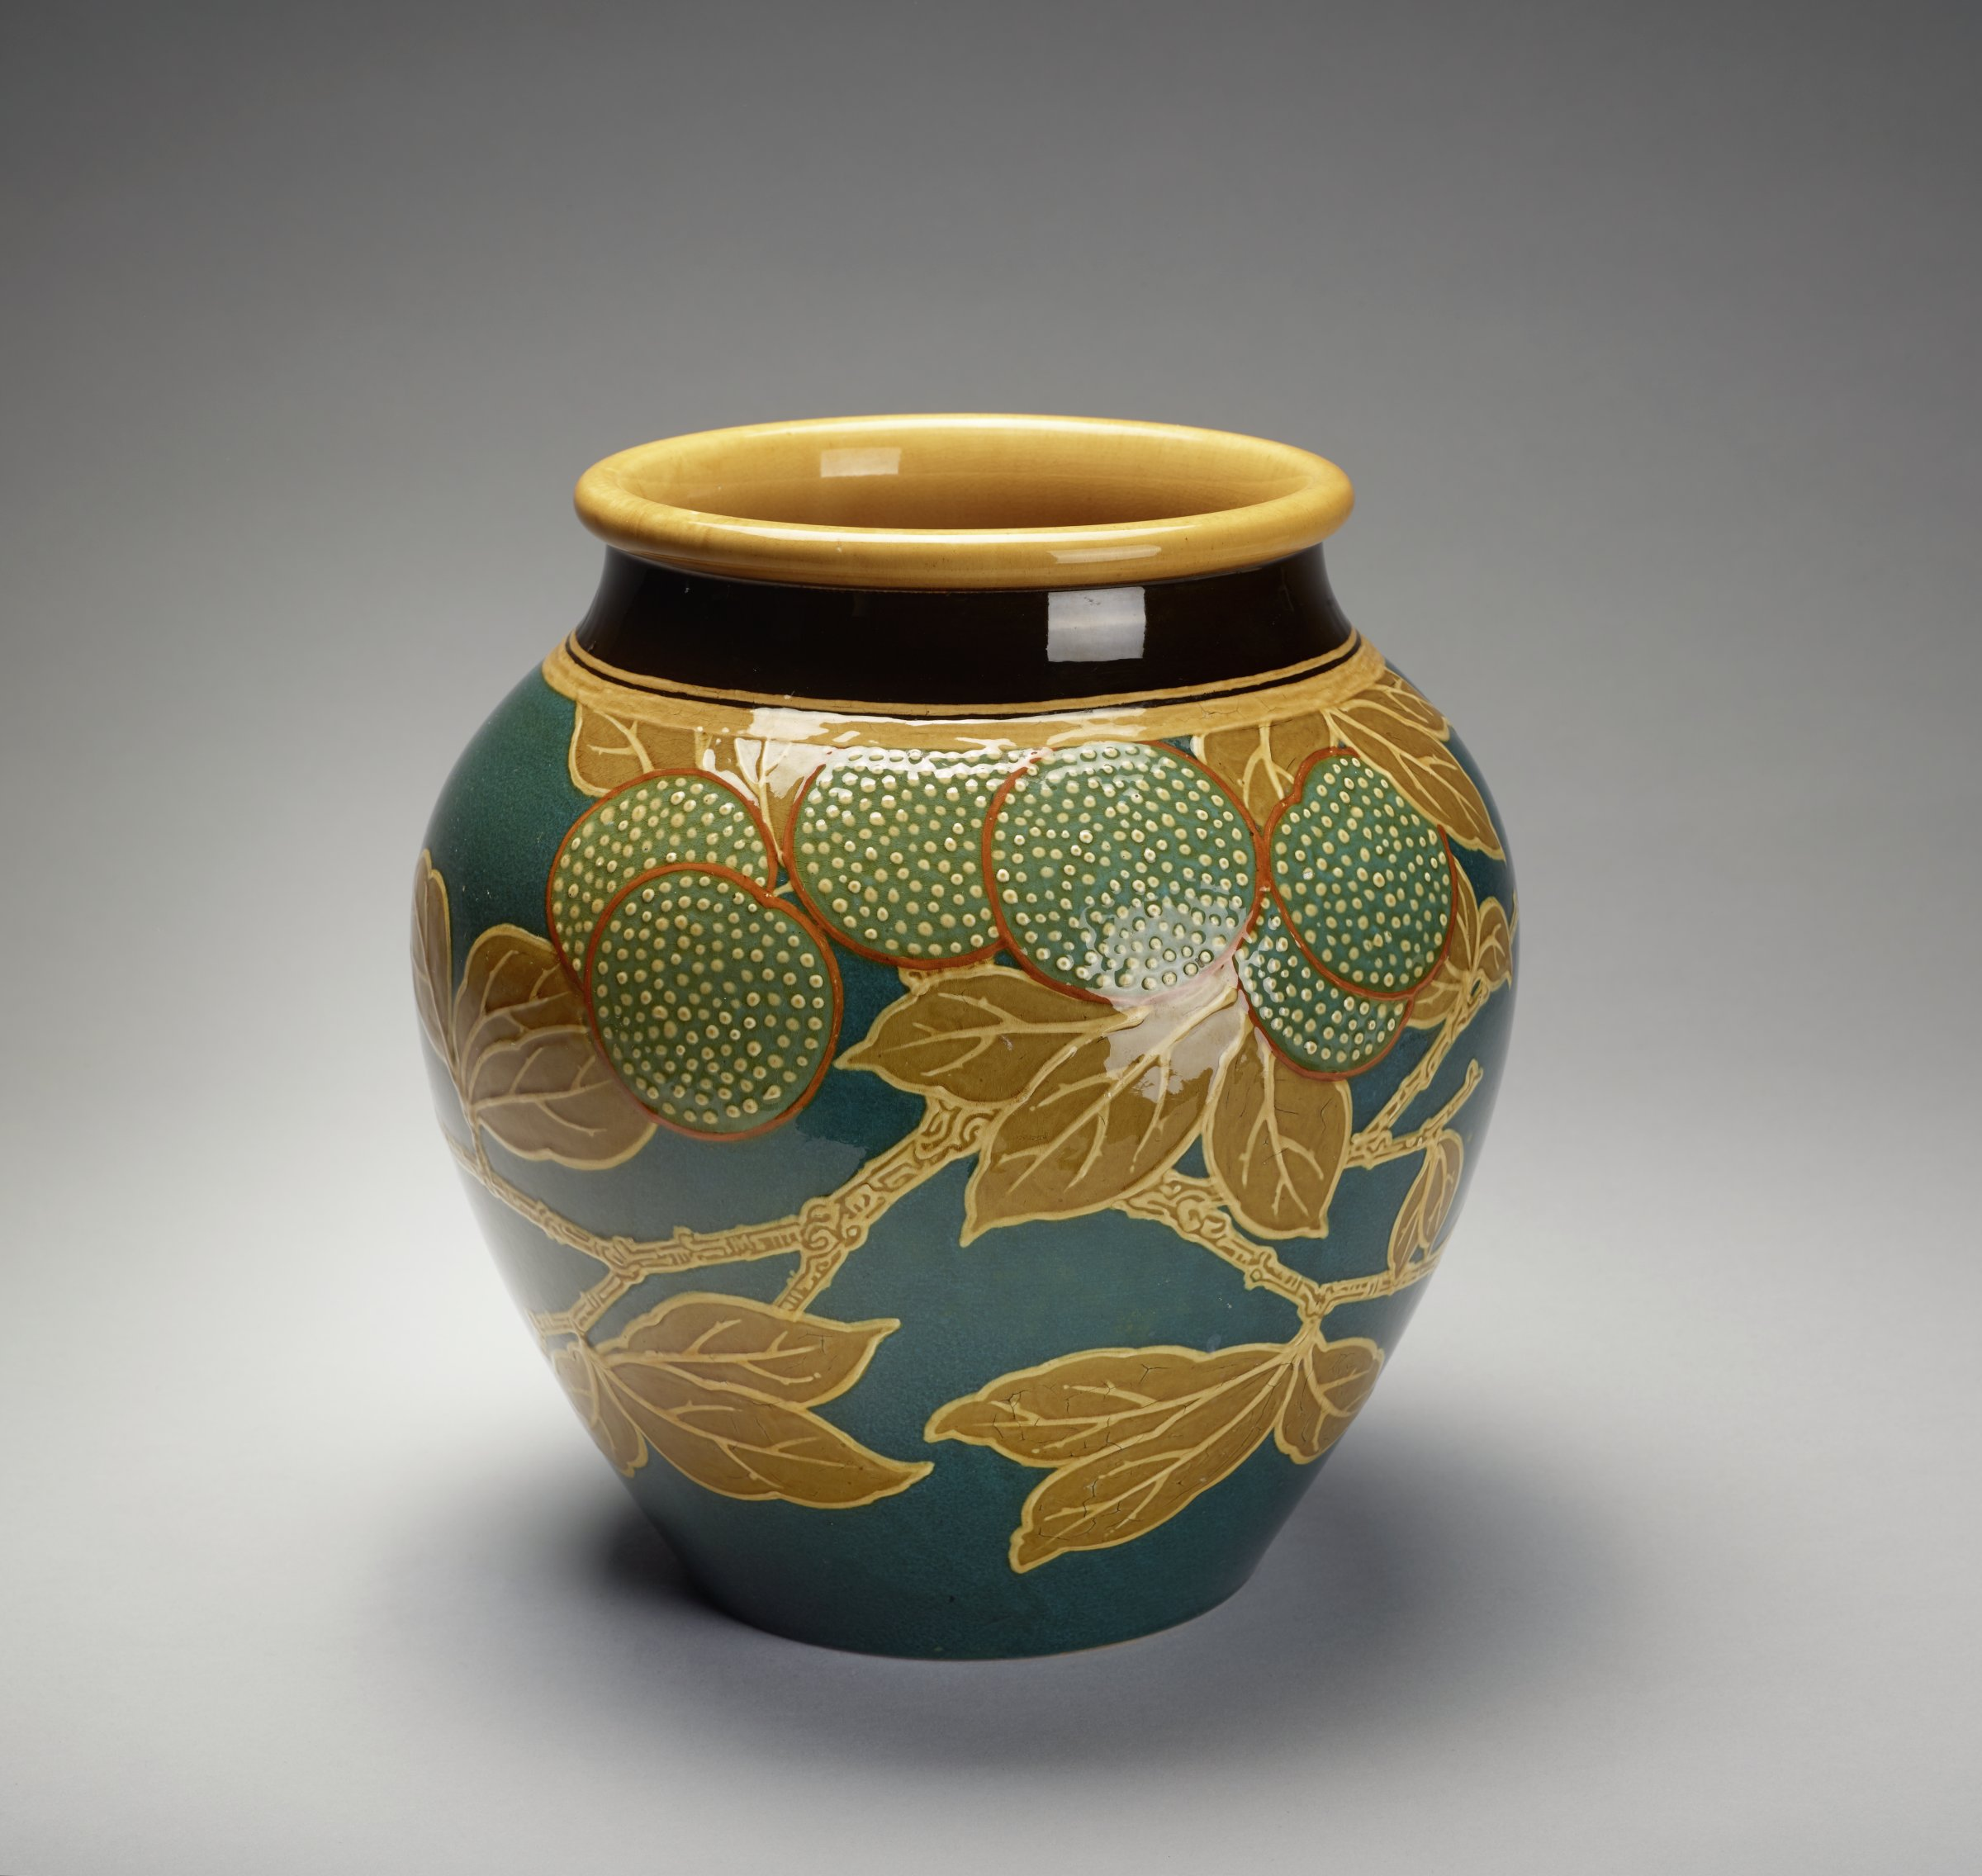 Large squat Marsden's Art Ware vase of glazed and slip-decorated earthenware, of baluster shape with rolled lip, the body interior and underside covered with a beige glaze, the main exterior body covered with a teal-blue glaze and decorated in a design of leafy branches in brown and beige slip and clusters of oranges in a light teal slip with beige dots indicating a typical orange-peel pattern, the neck with a wide brown band above narrow beige bands.